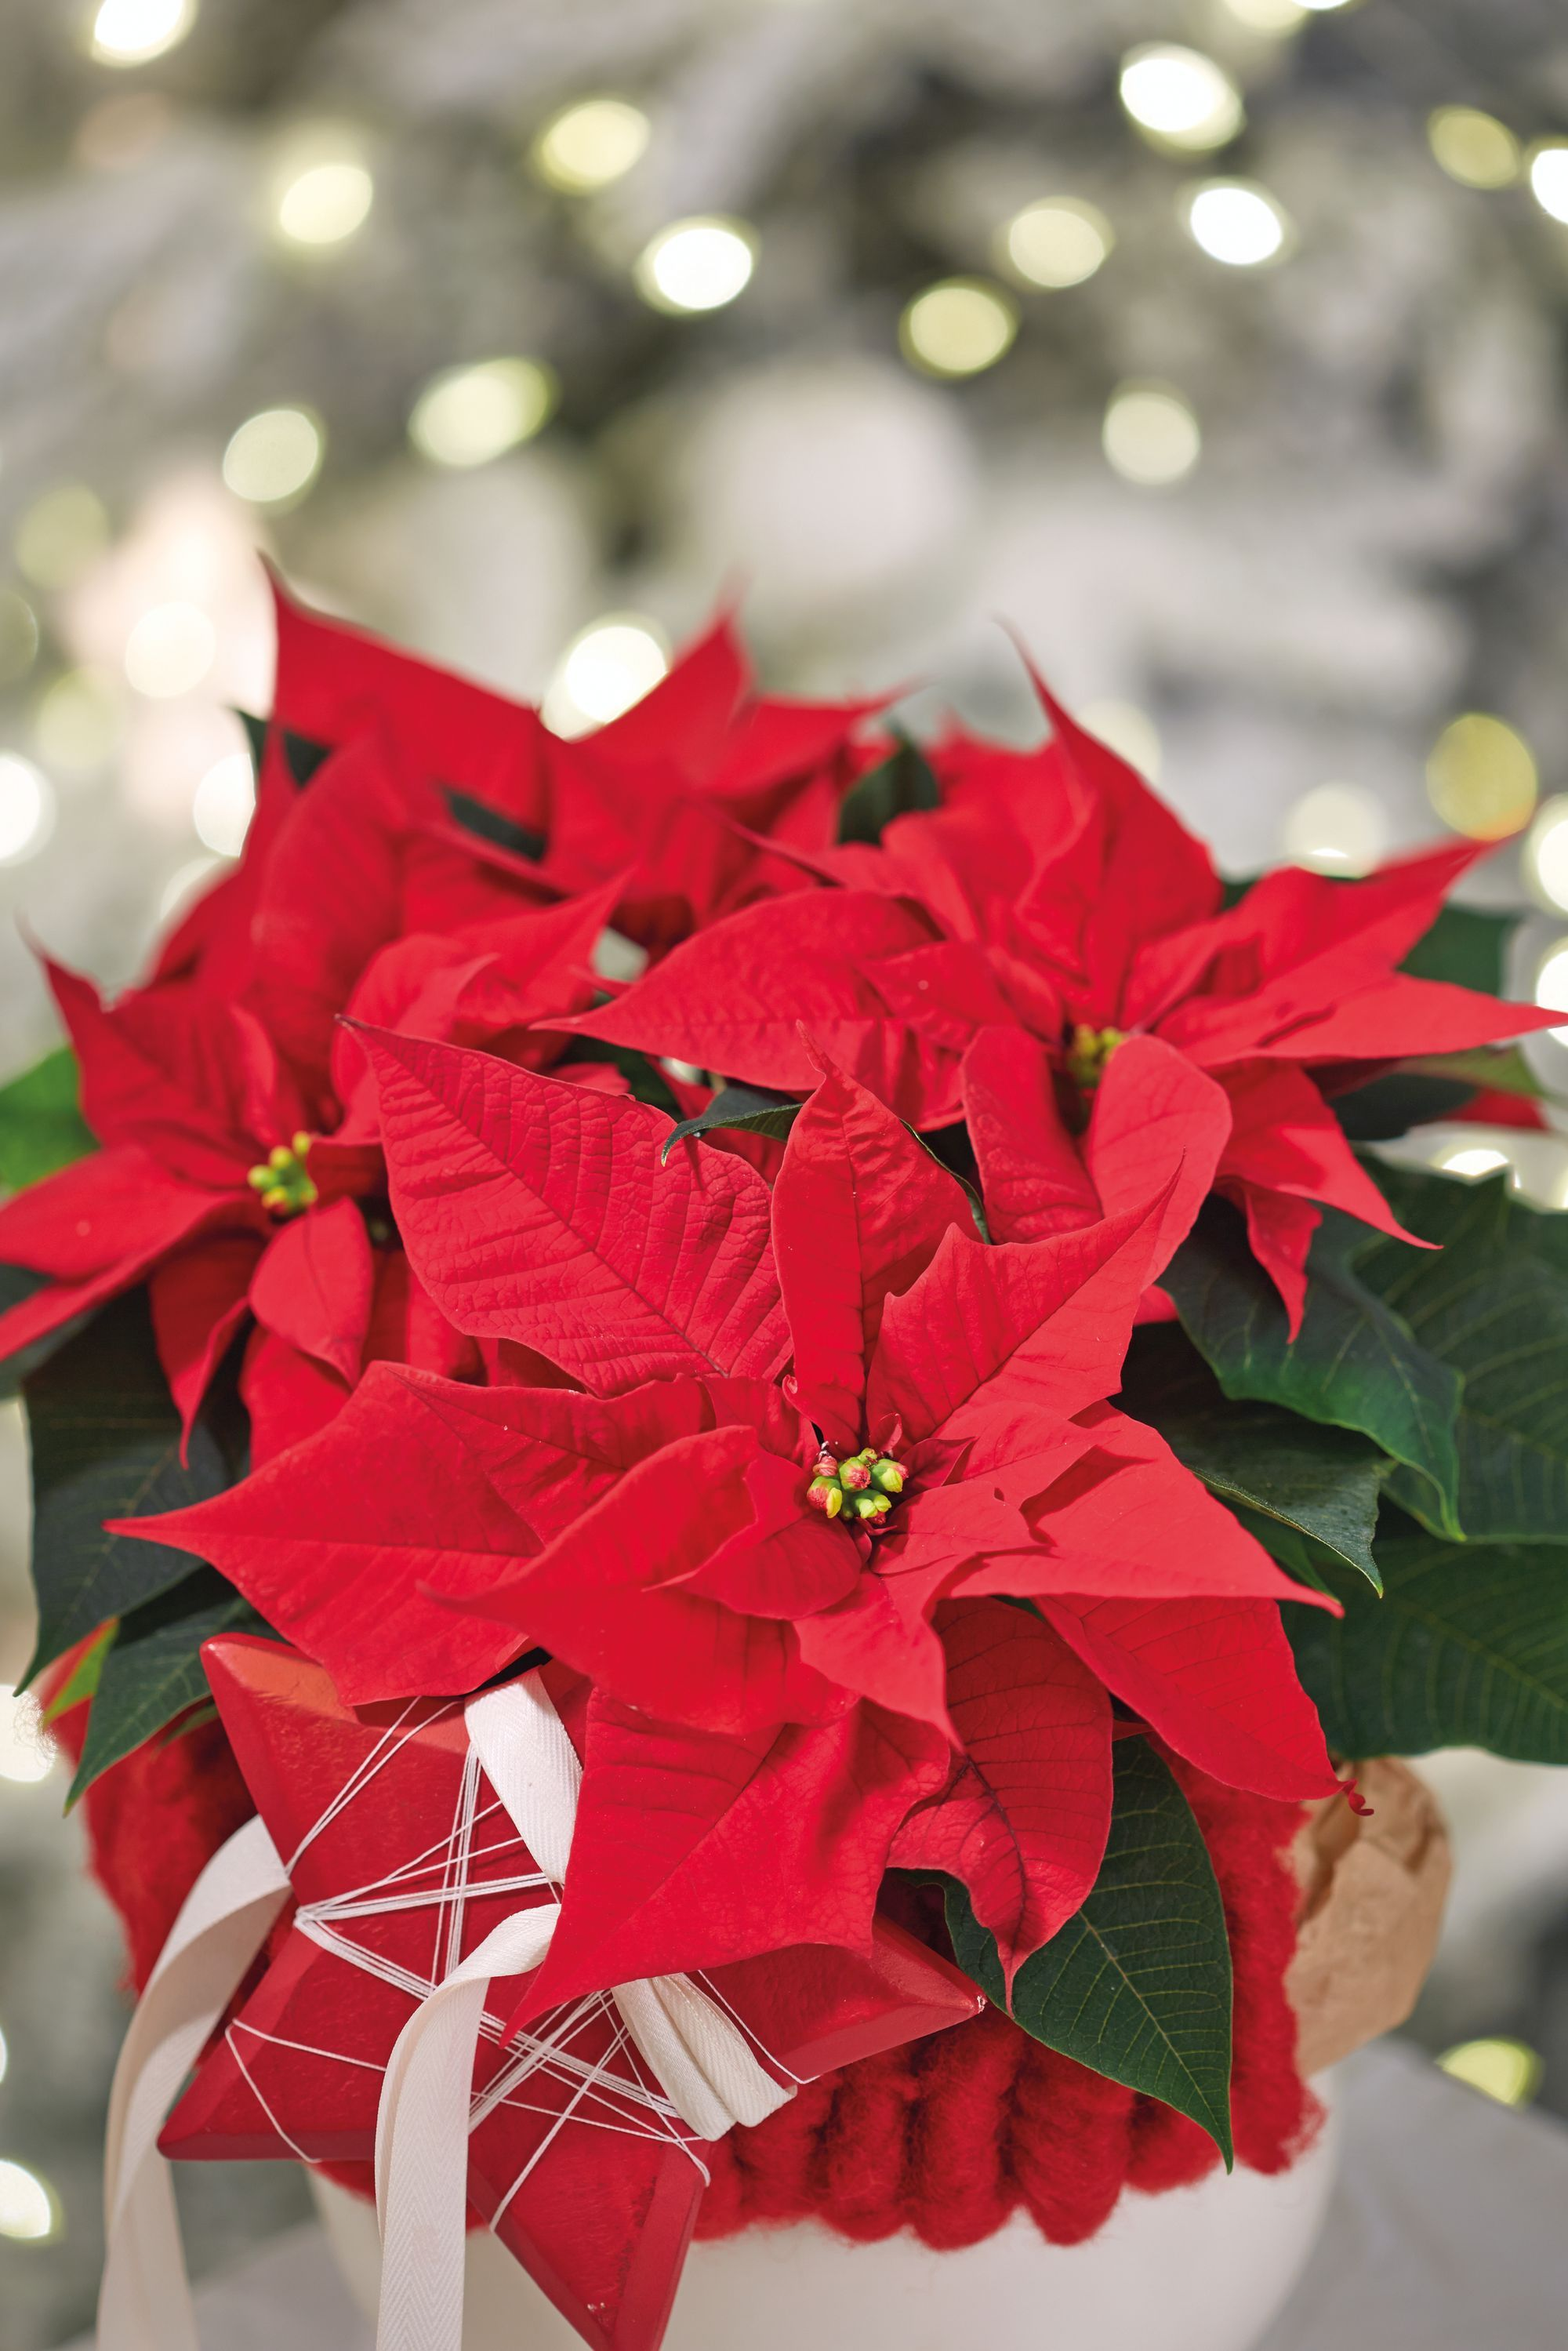 2015-poinsettia-close-up-bagliore-it